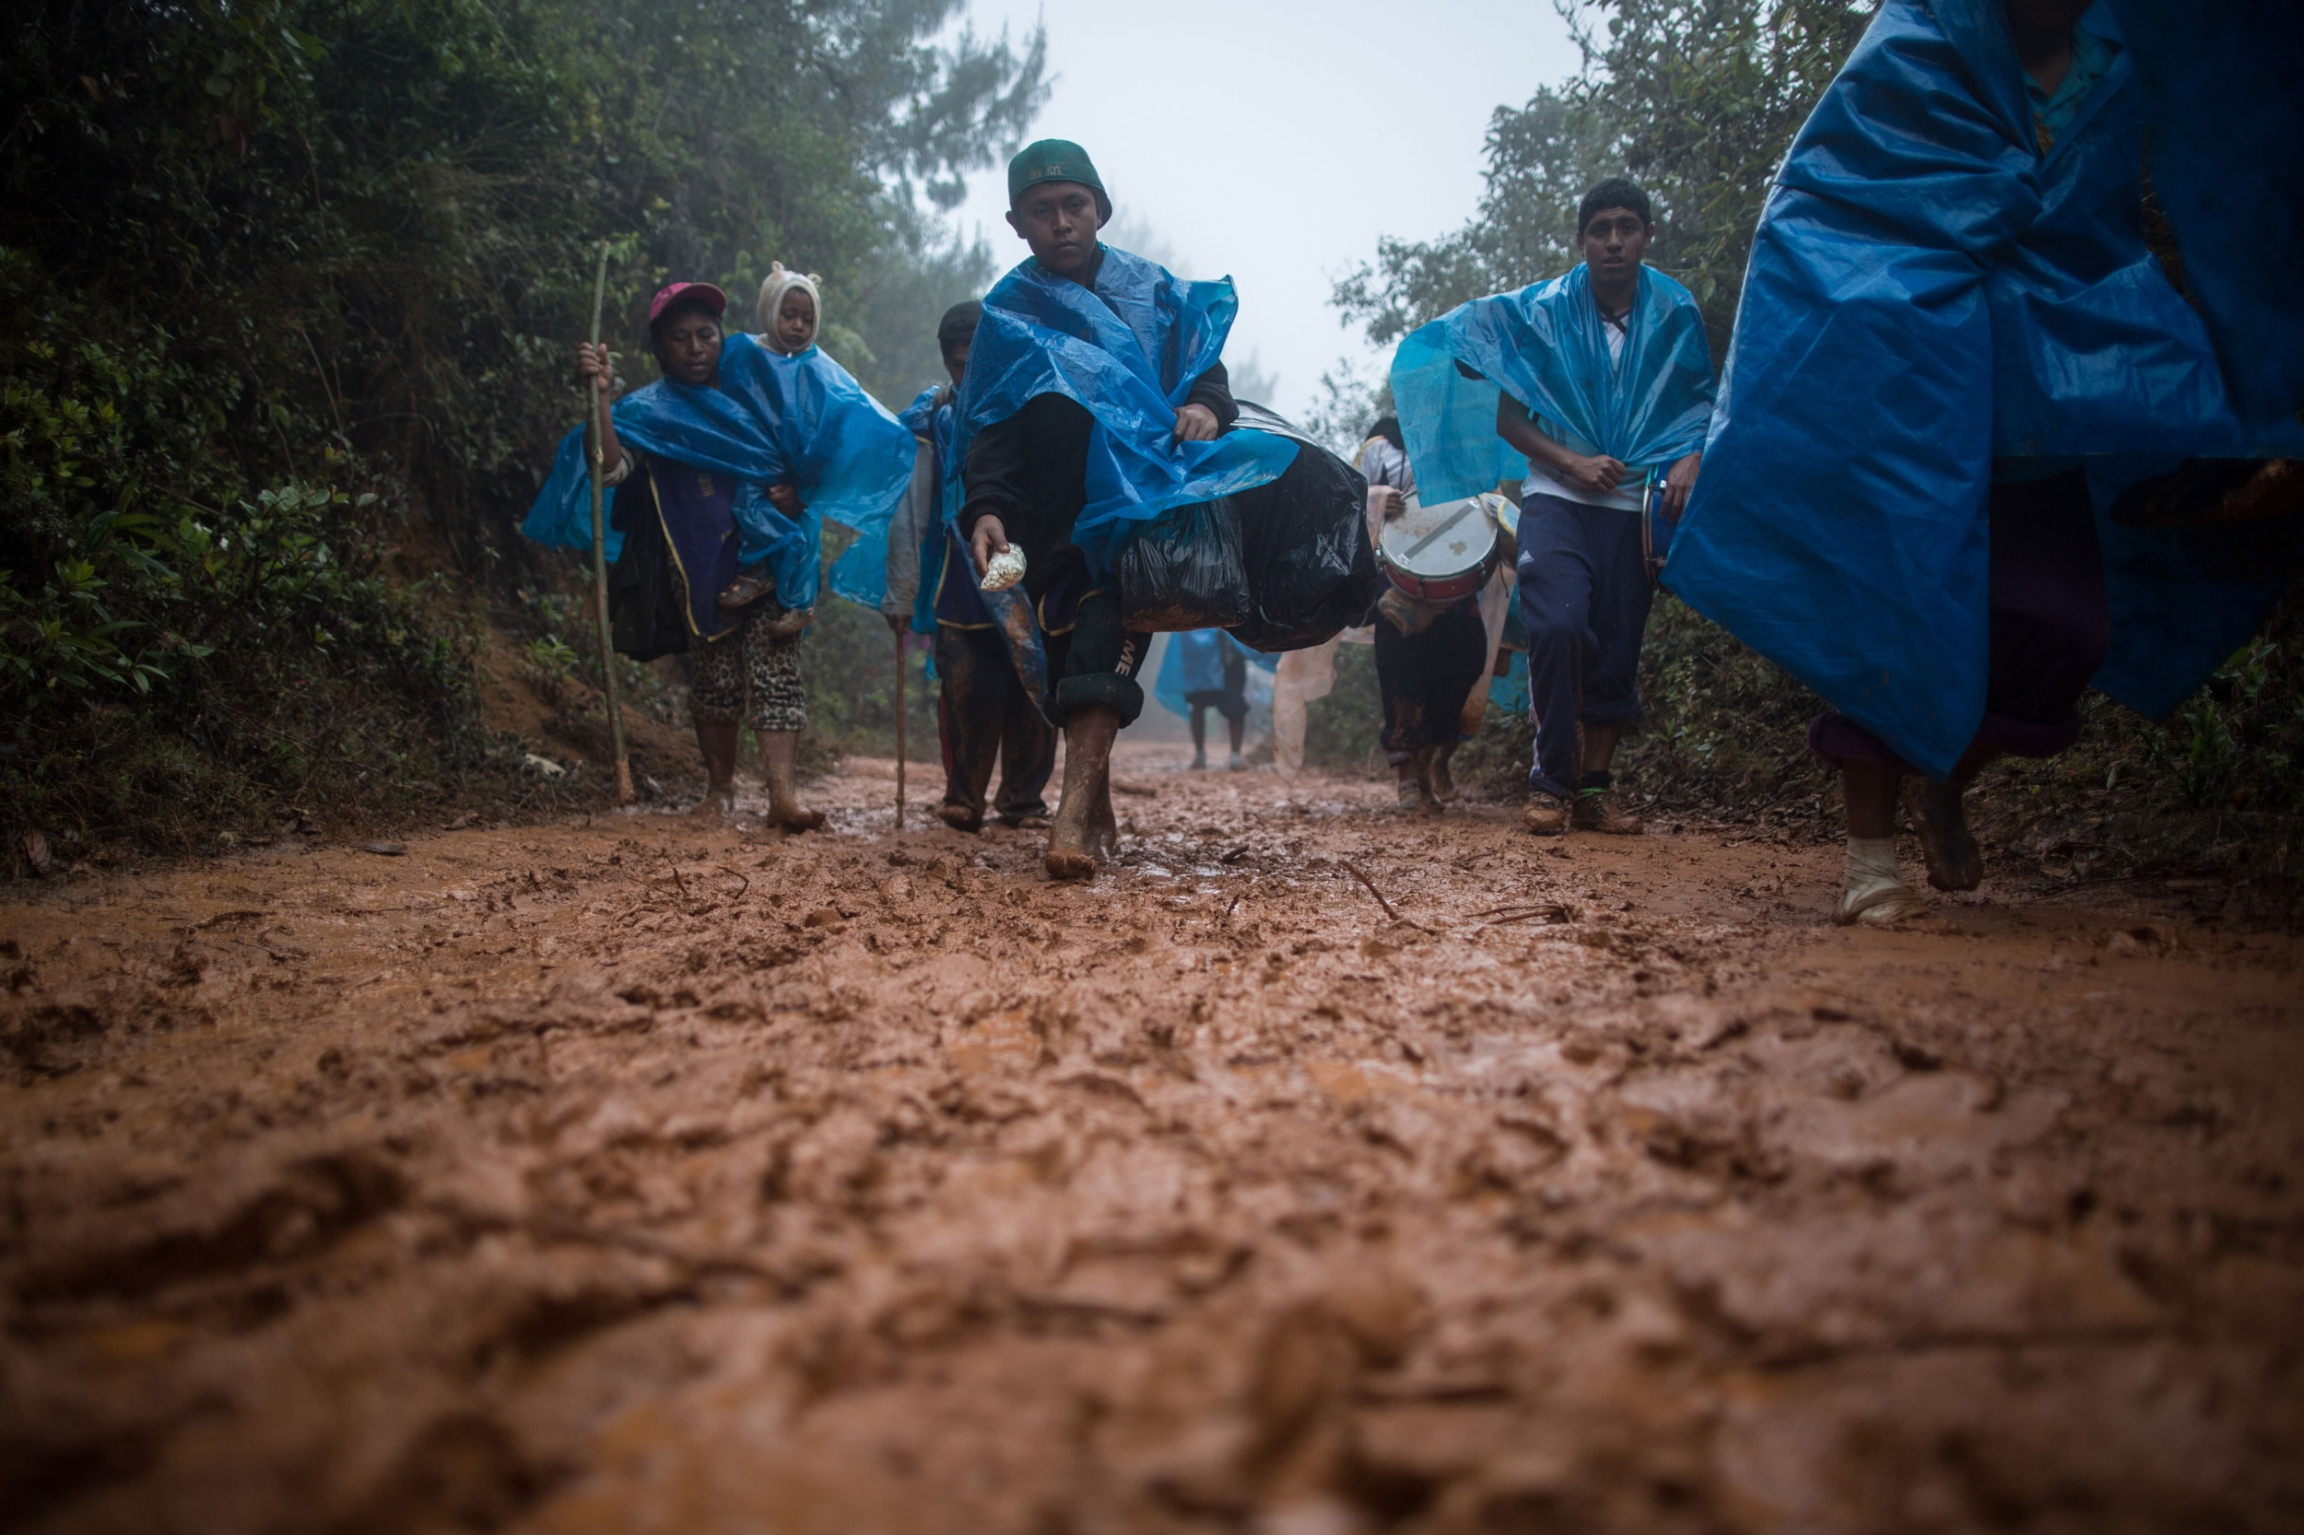 Several people are shown walking along a muddy path and wearing blue rain ponchos.